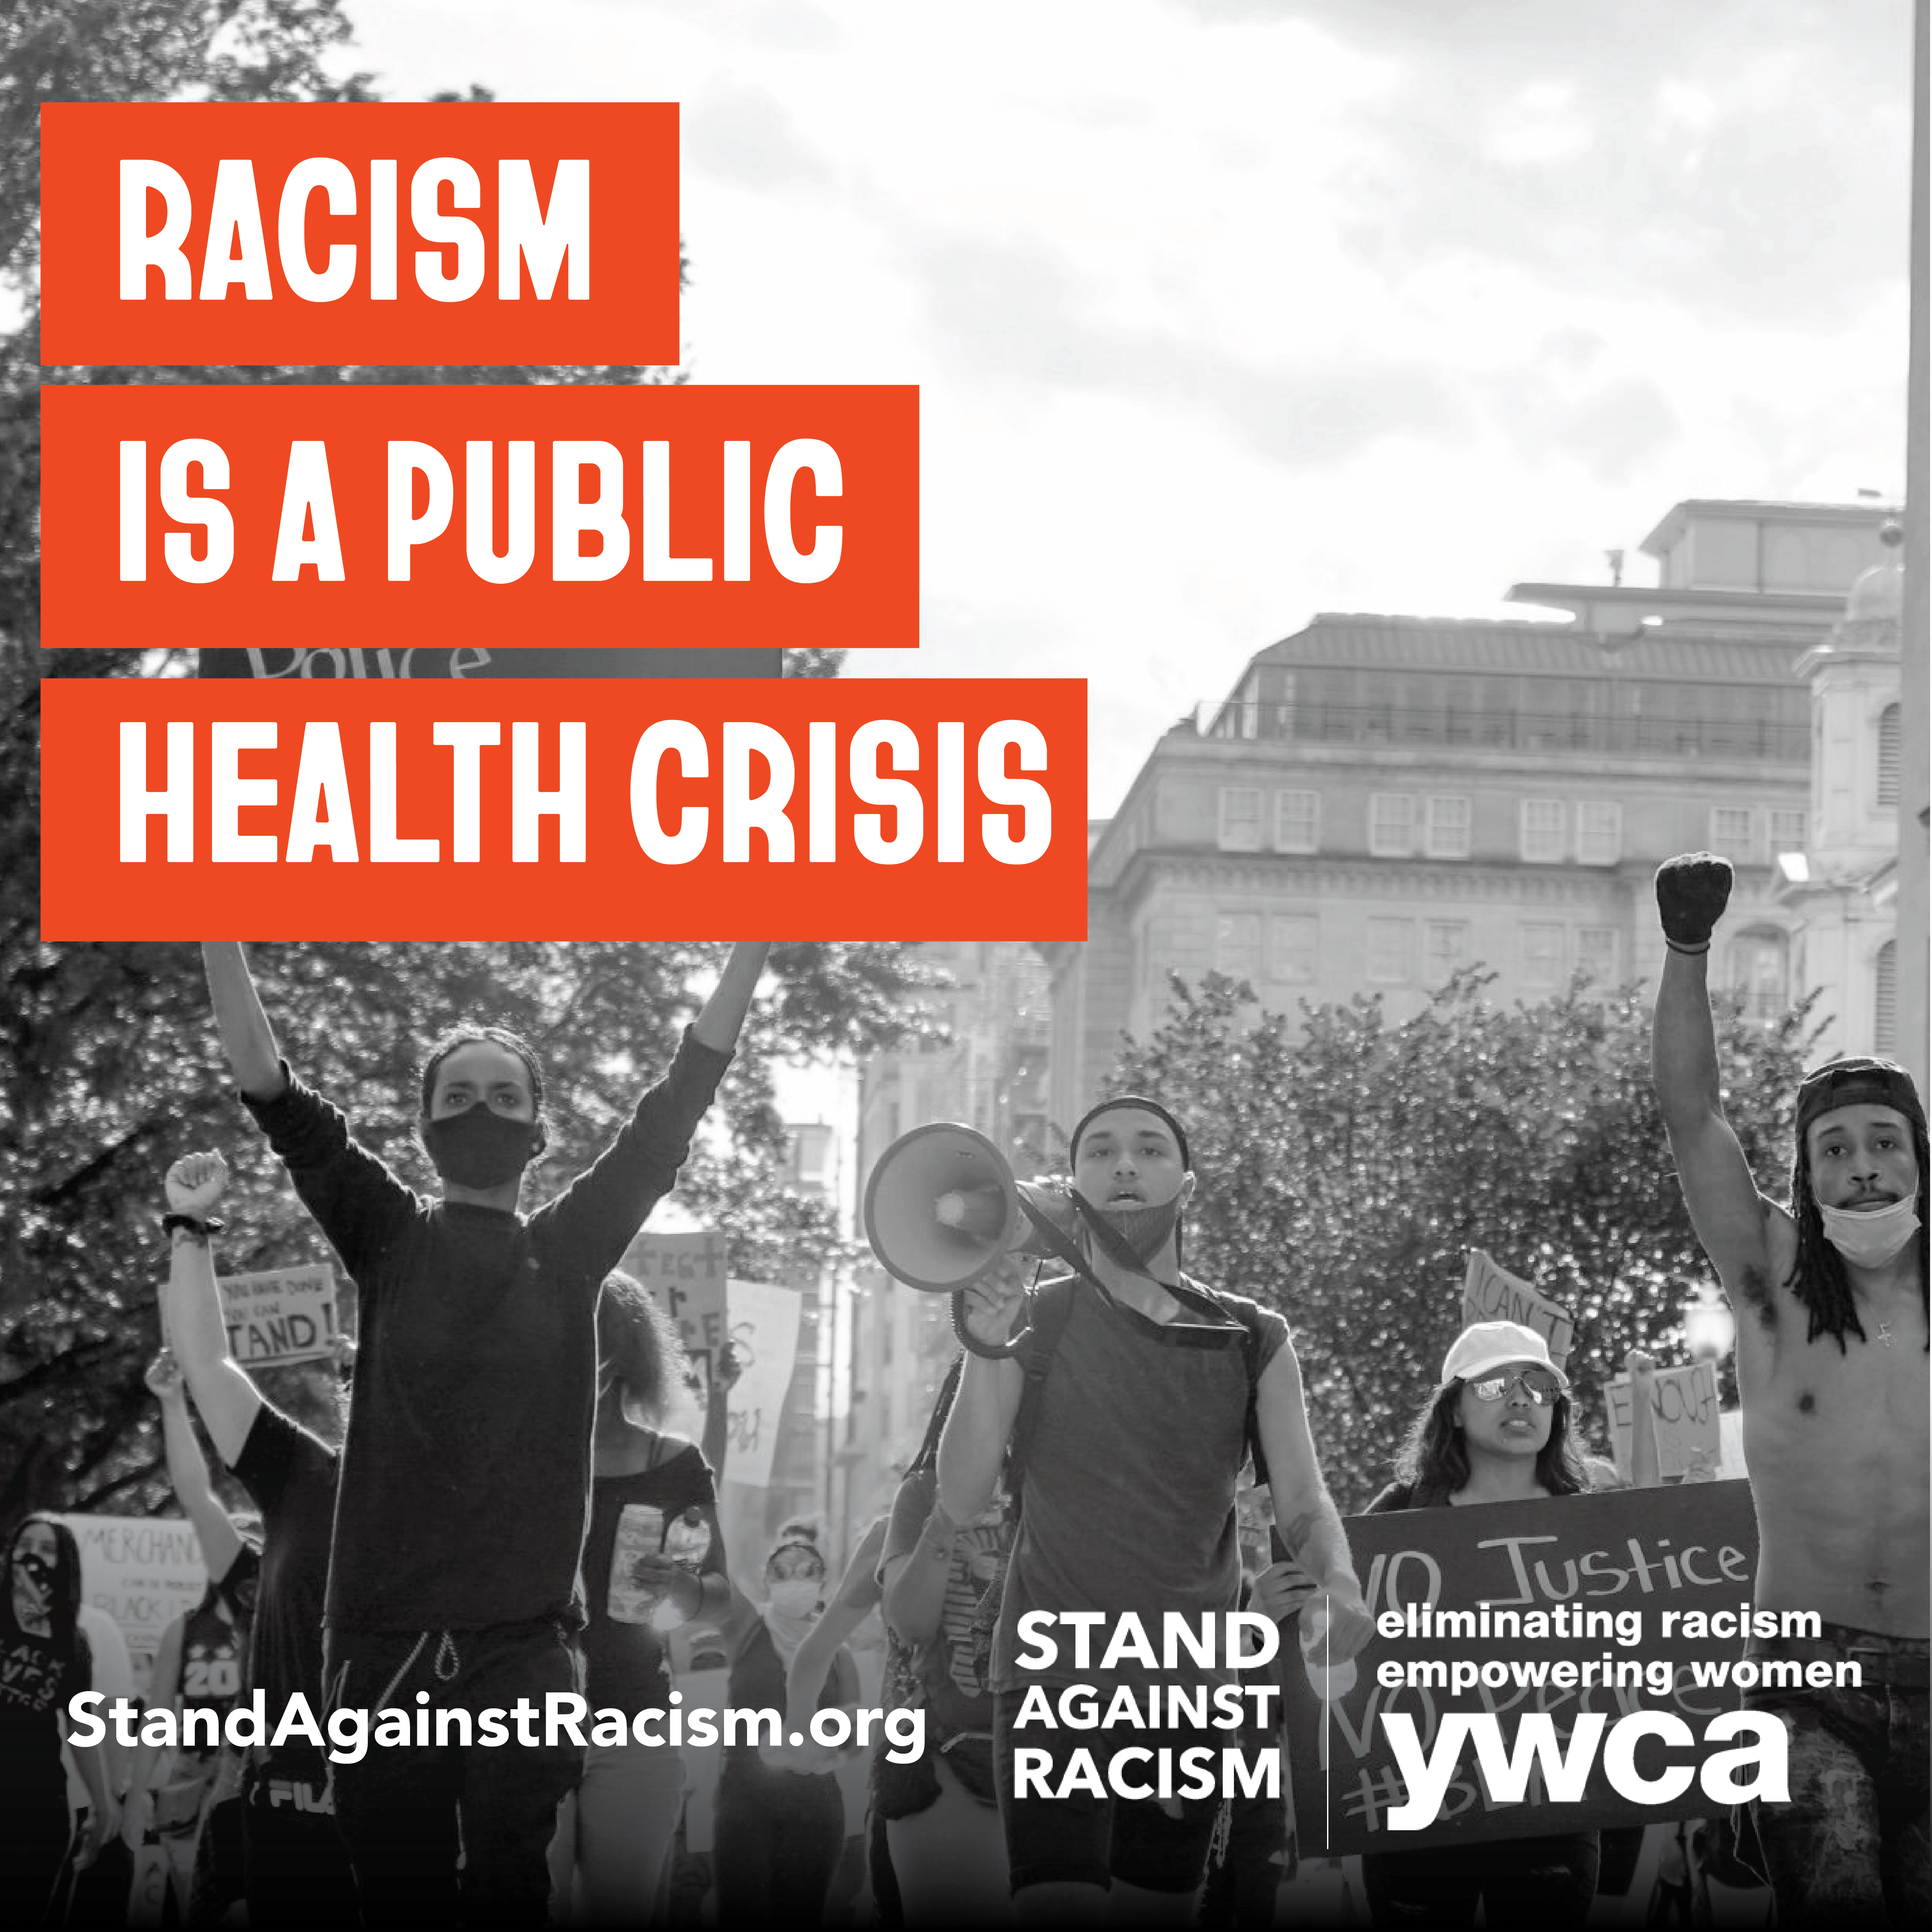 raicism is a public health crisis lead image of people protesting